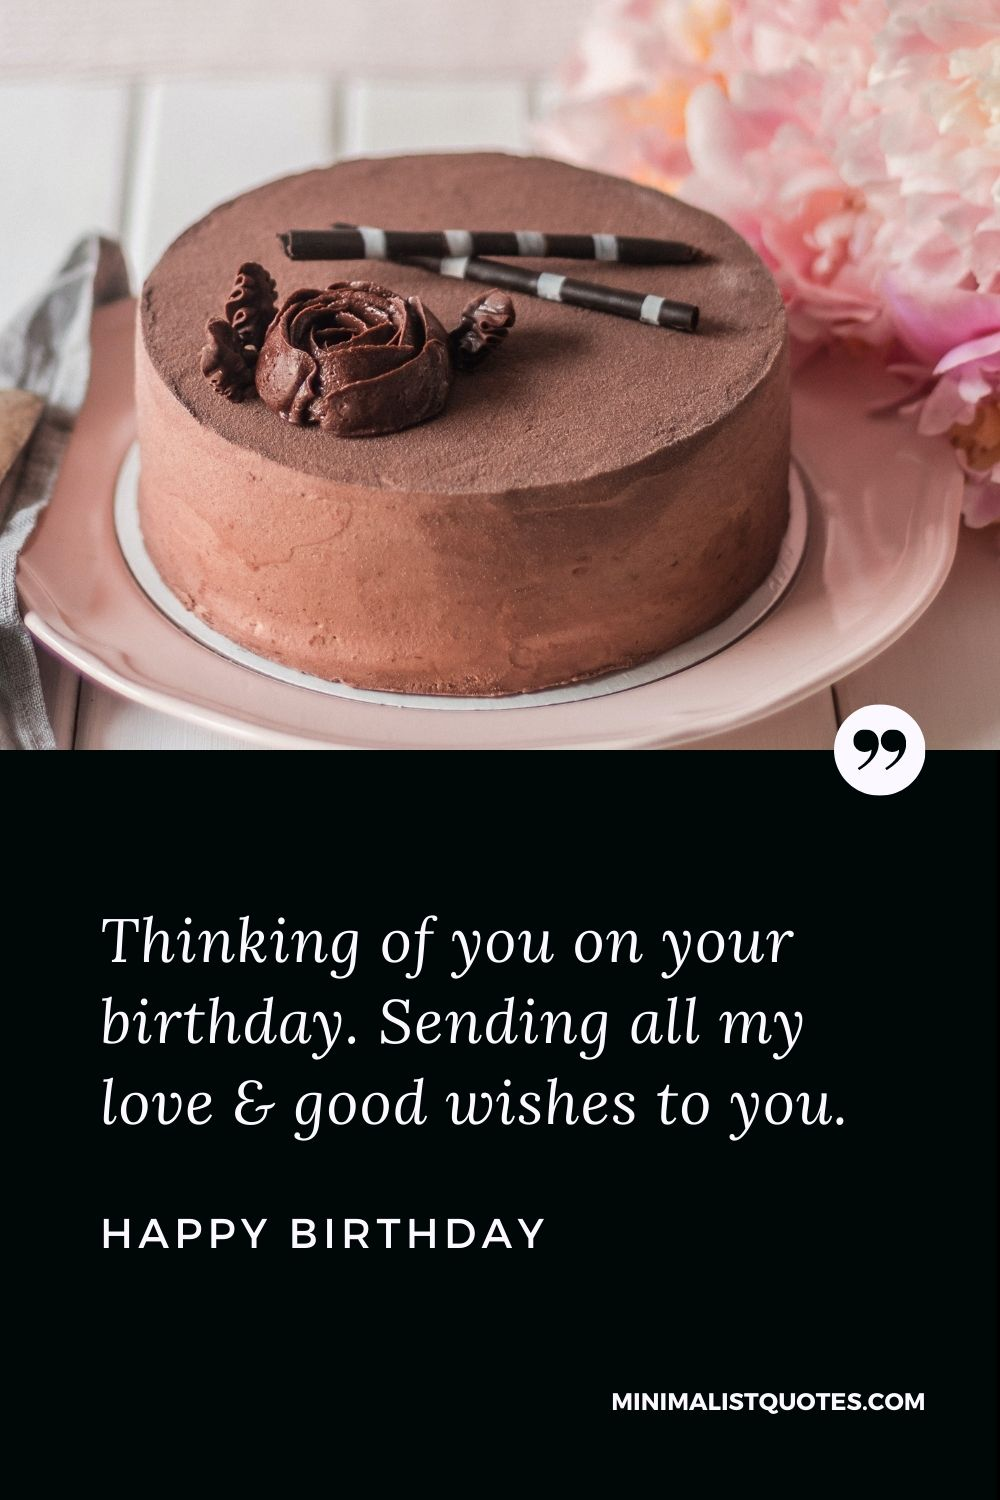 Happy Birthday Wishes - Thinking of you on your birthday. Sending all my love & good wishes to you.